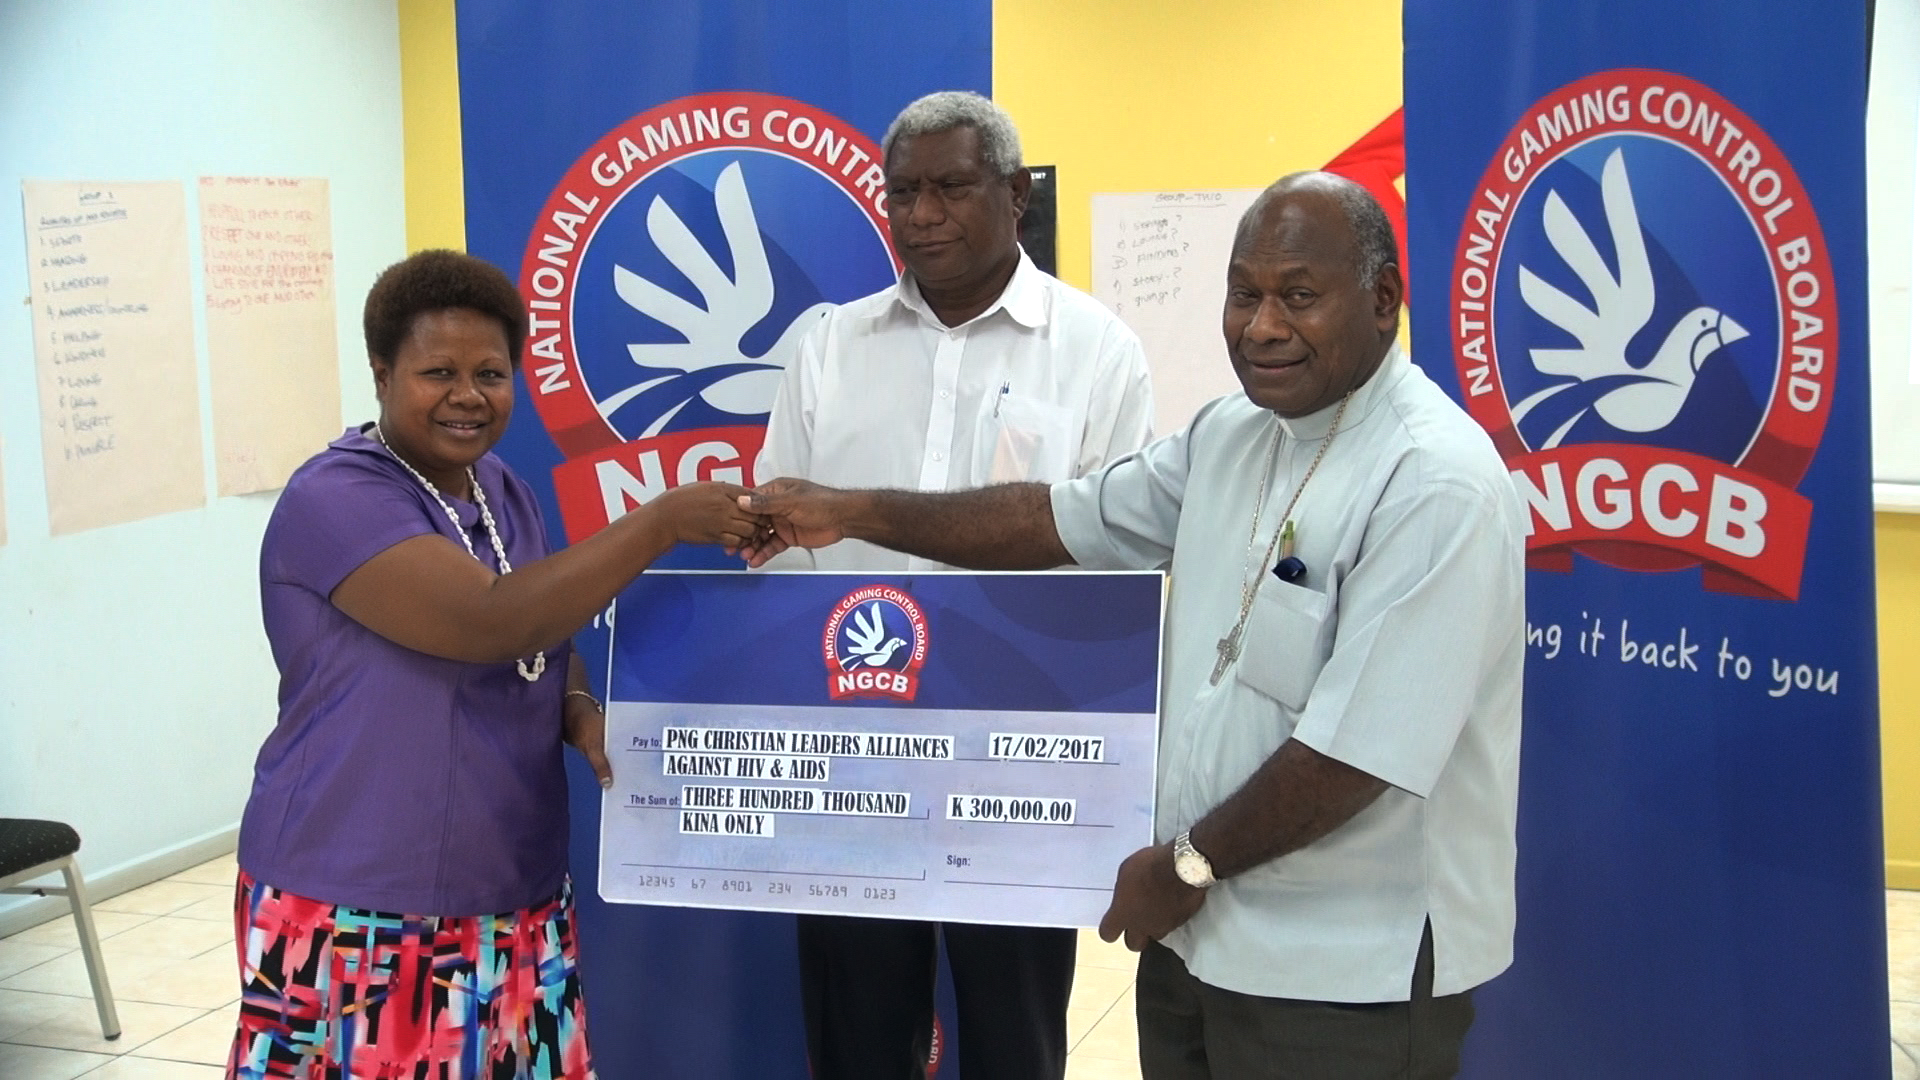 NGCB supports PNG Christian Leaders Alliance for HIV Summit.